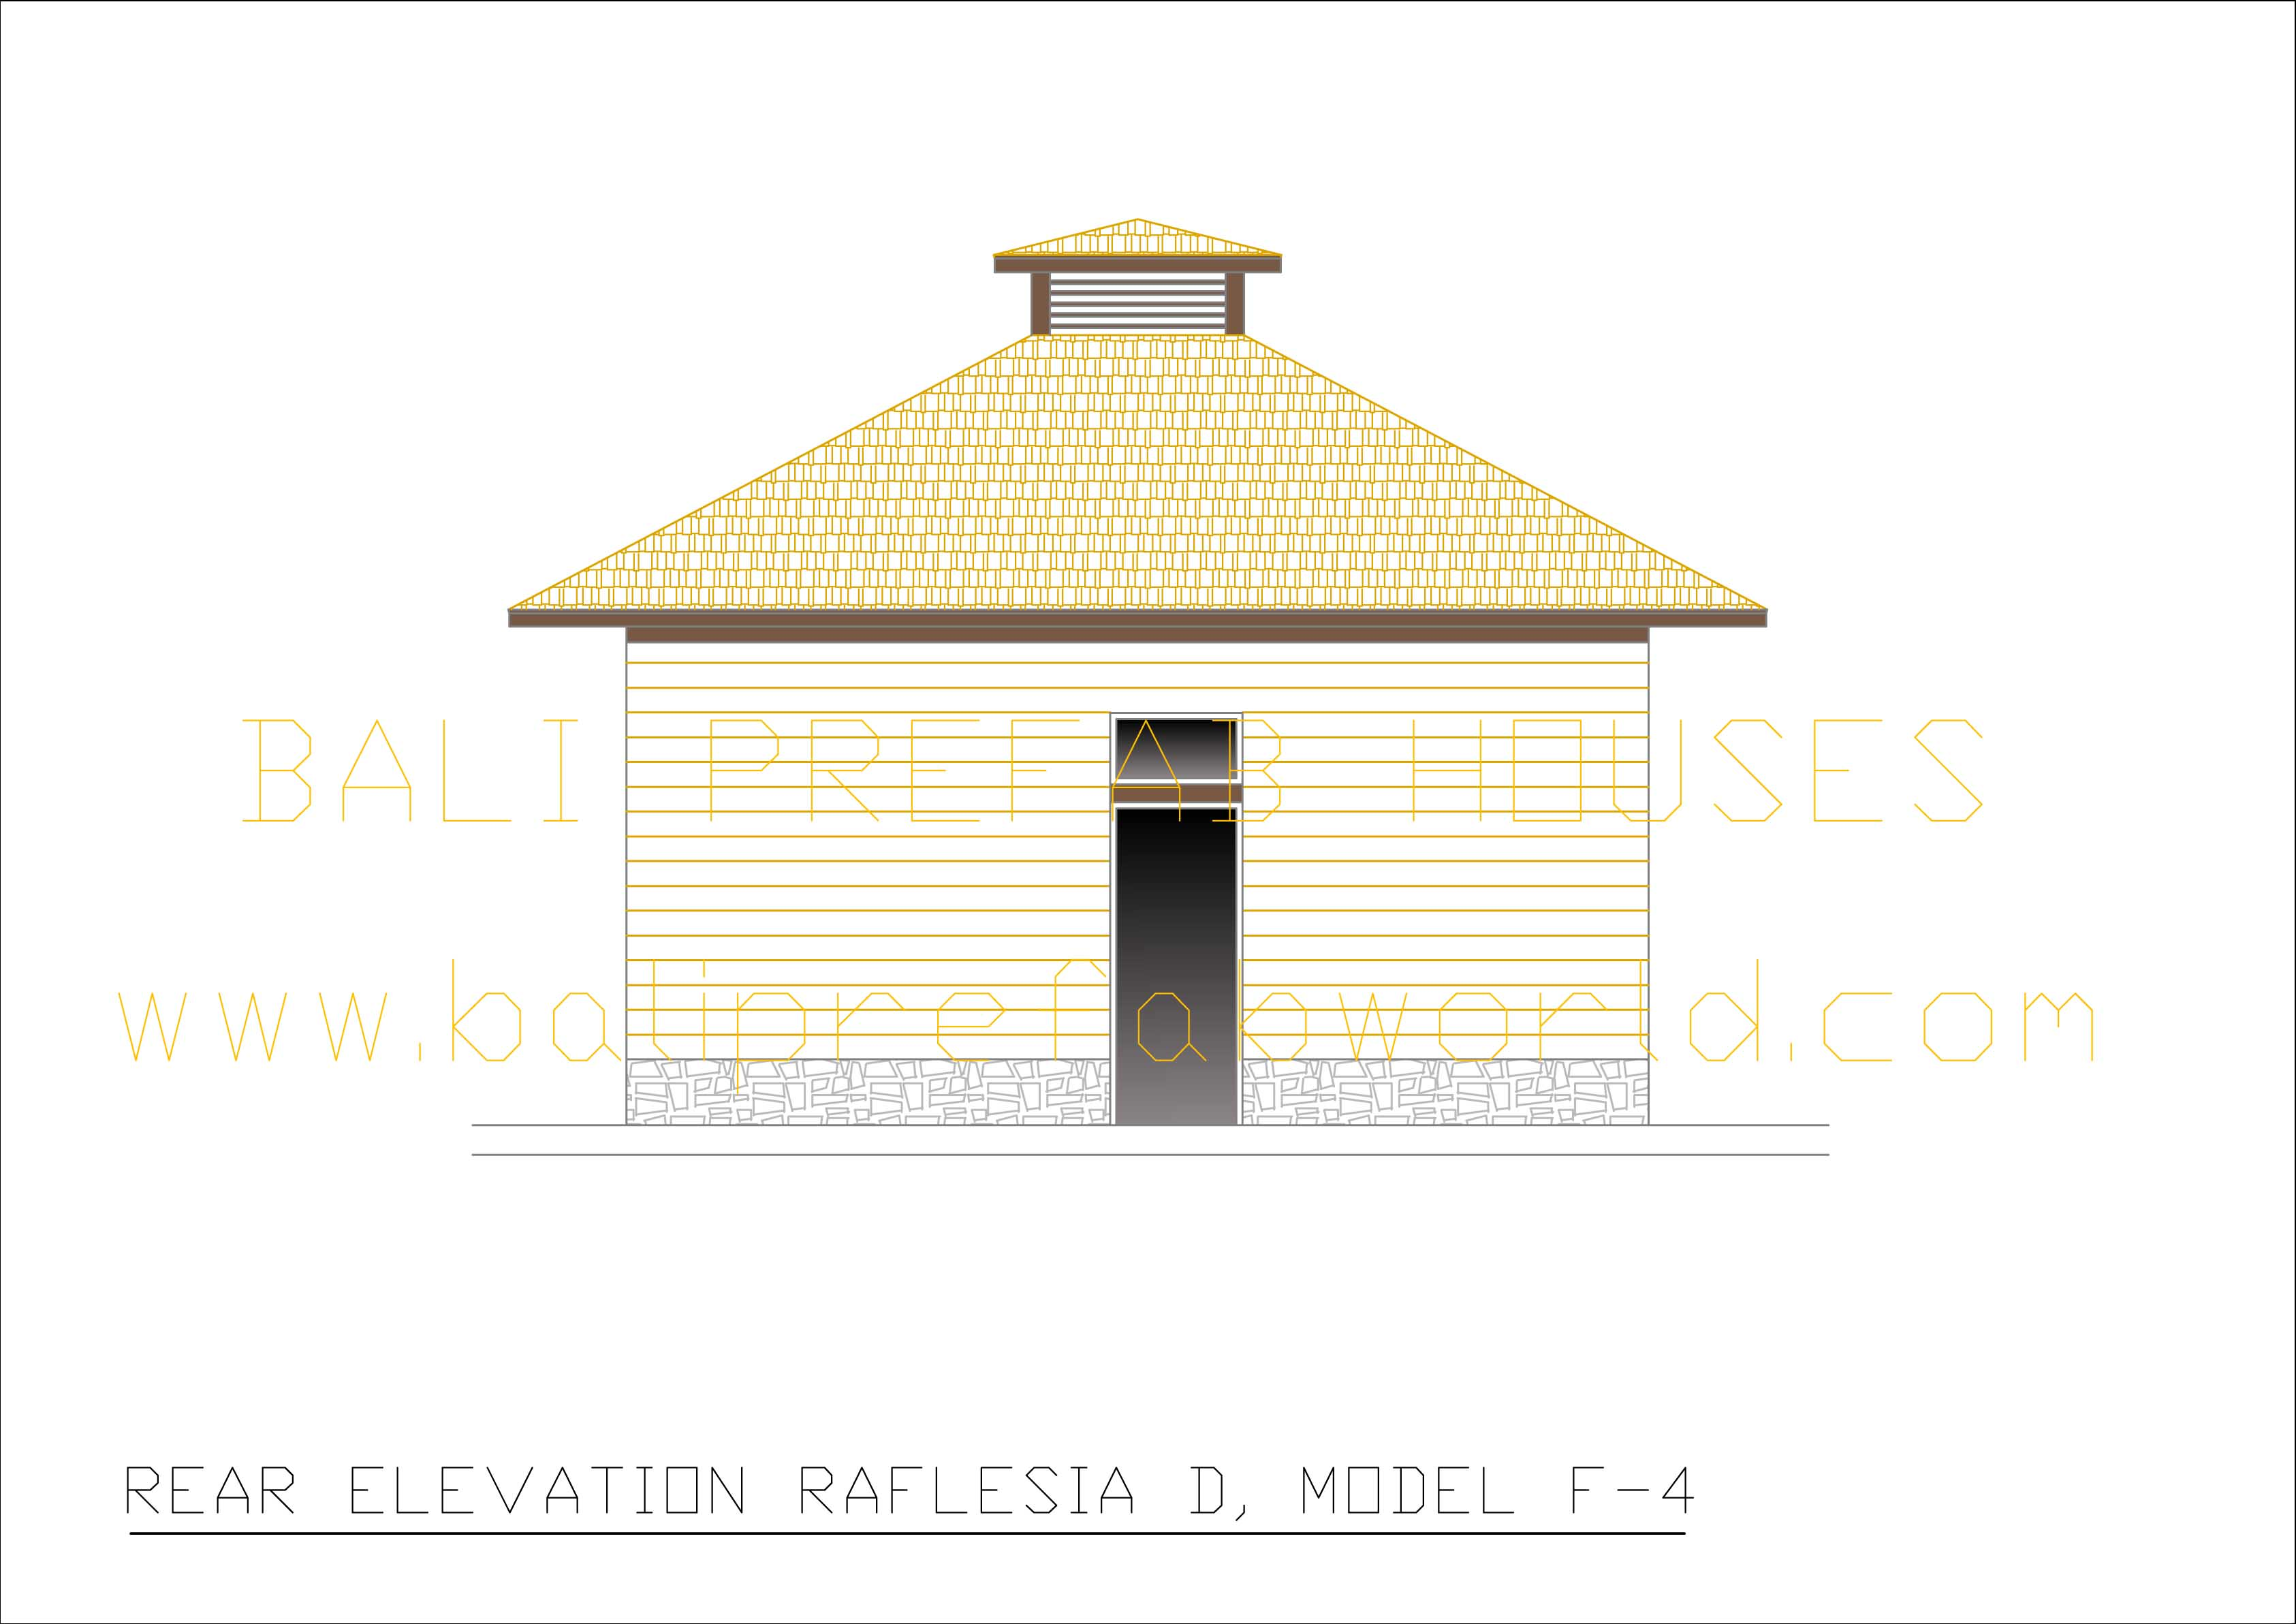 Raflesia-D rear elevation